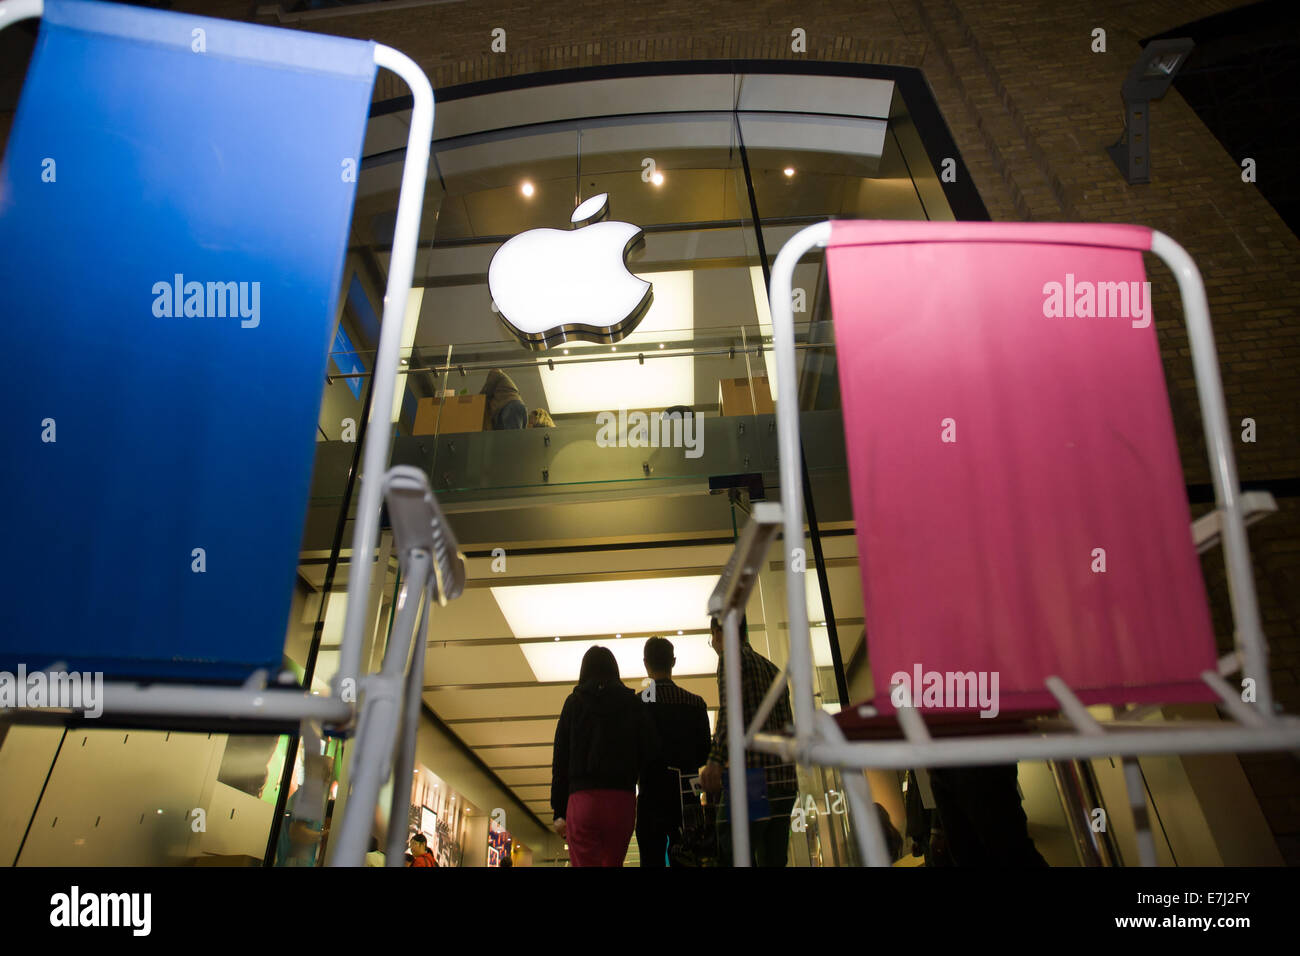 Blefast, Northern Ireland. 18th September, 2014.  A blue and a pink chair outside the Apple shop in Belfast. People Stock Photo